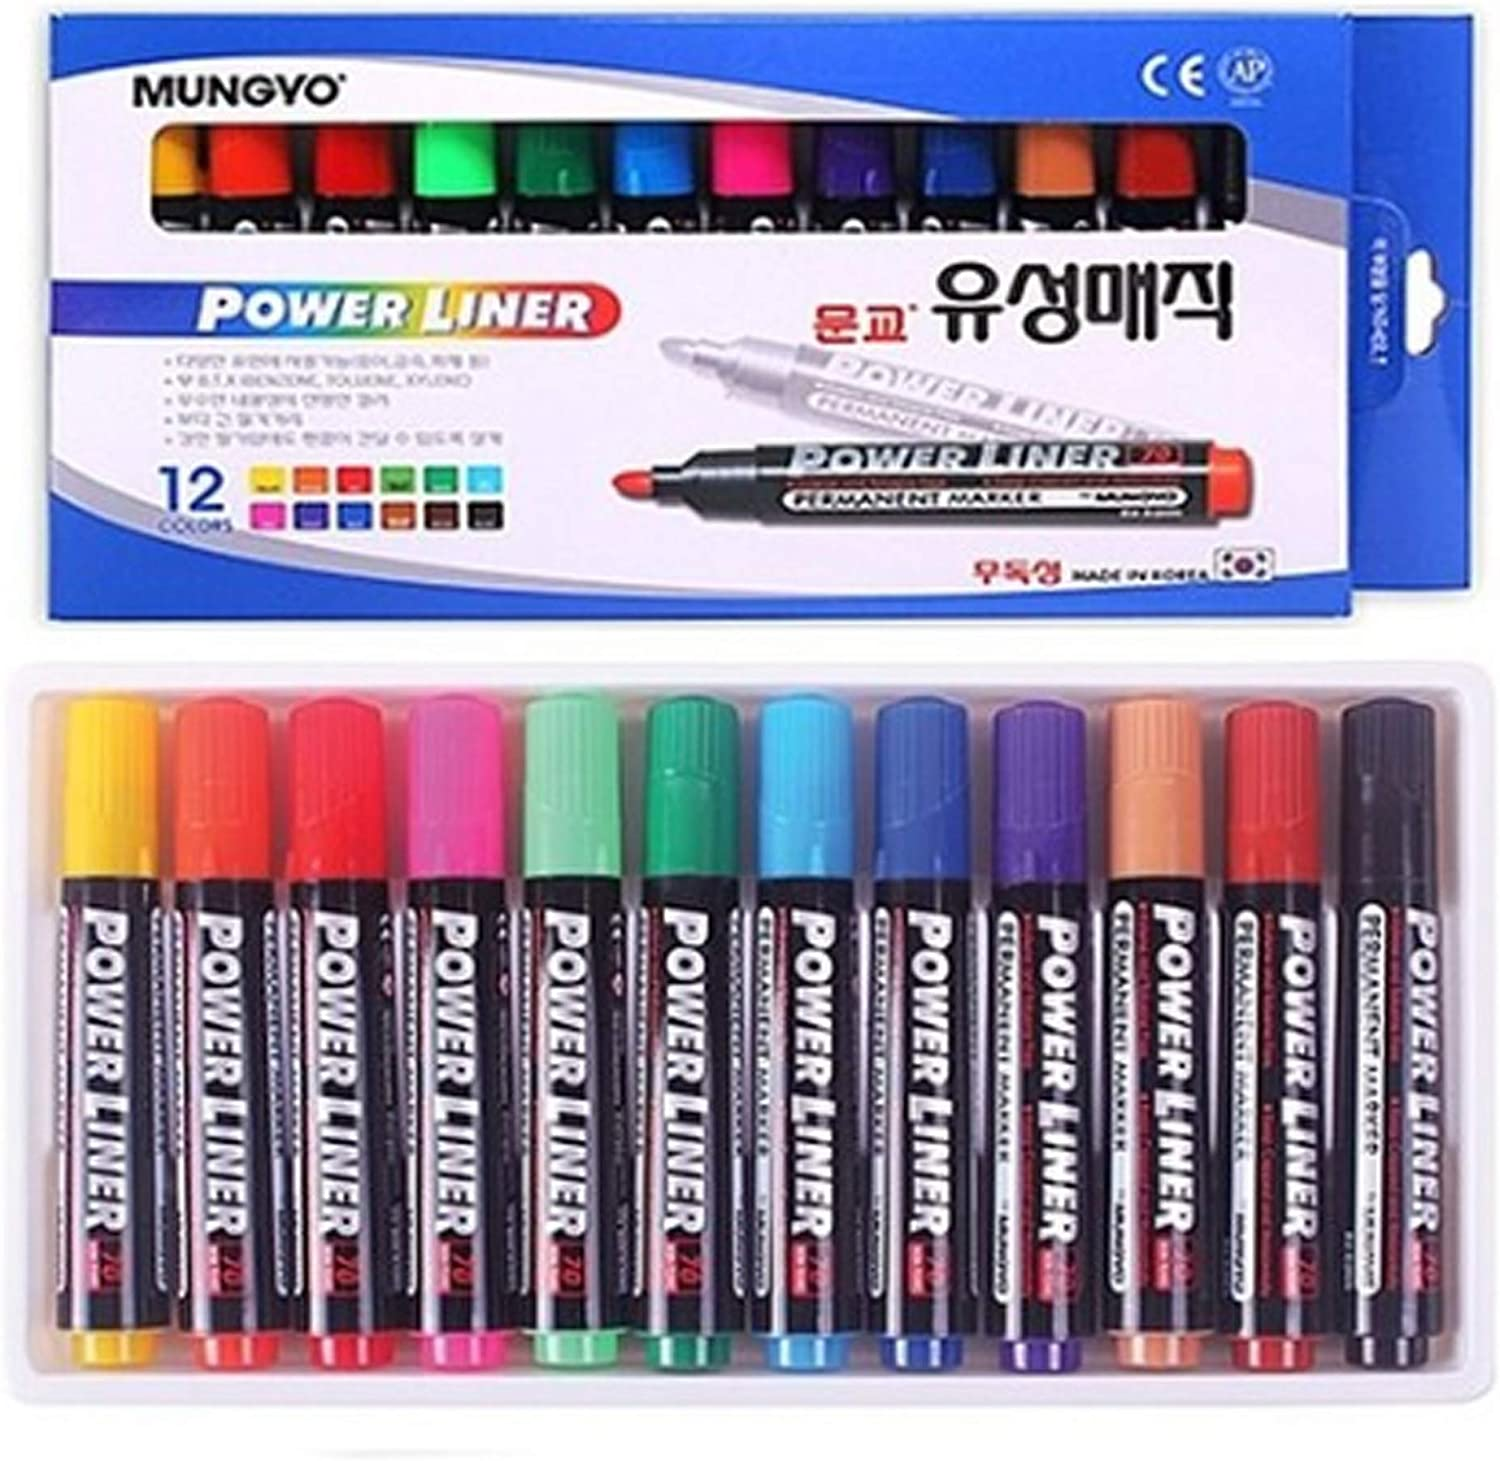 Mungyo Permanent half Marker Power Liner Ink Made Seattle Mall 12 Colors Non-toxic